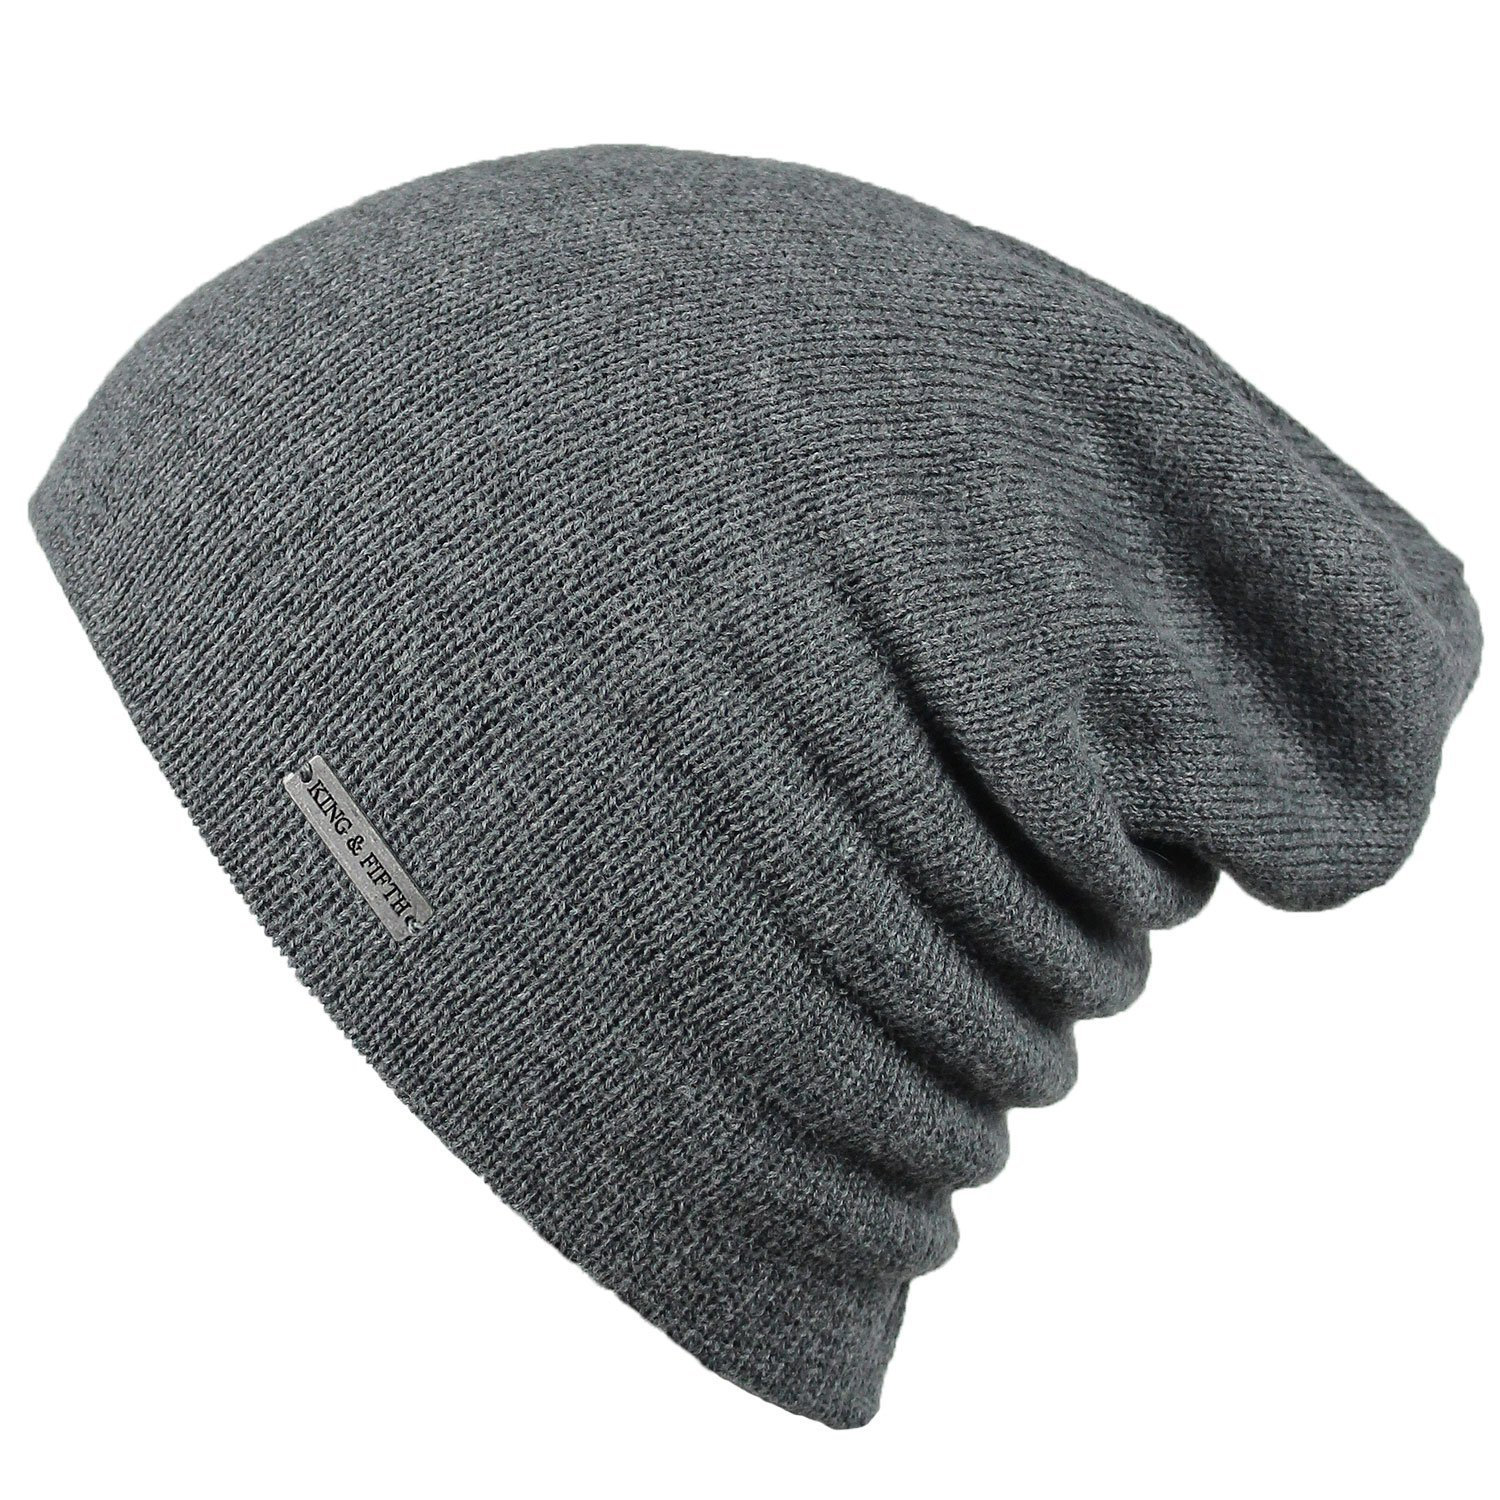 Summer Beanie by King & Fifth | Slouchy Beanie for Men & Women + Breathable Cotton Beanie and Perfect for Warm Weather + Grey Beanie